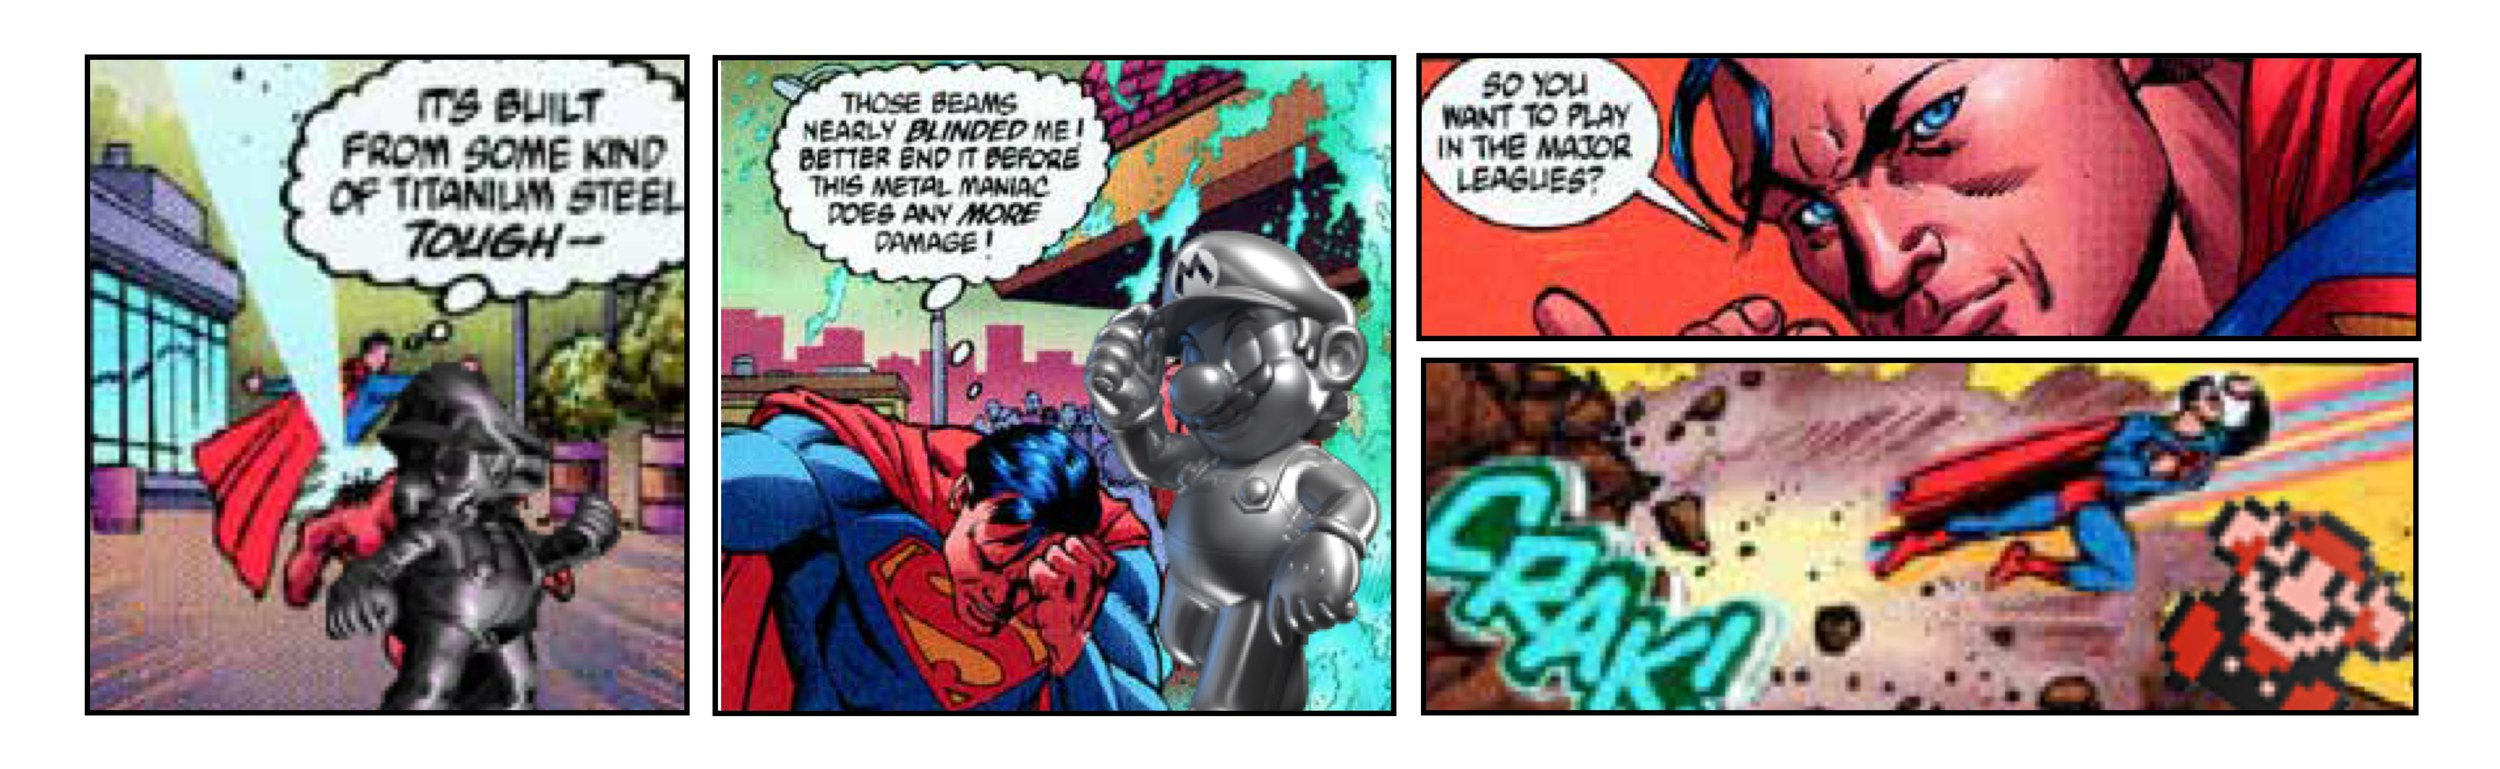 SUPERMAN vs. SUPER MARIO